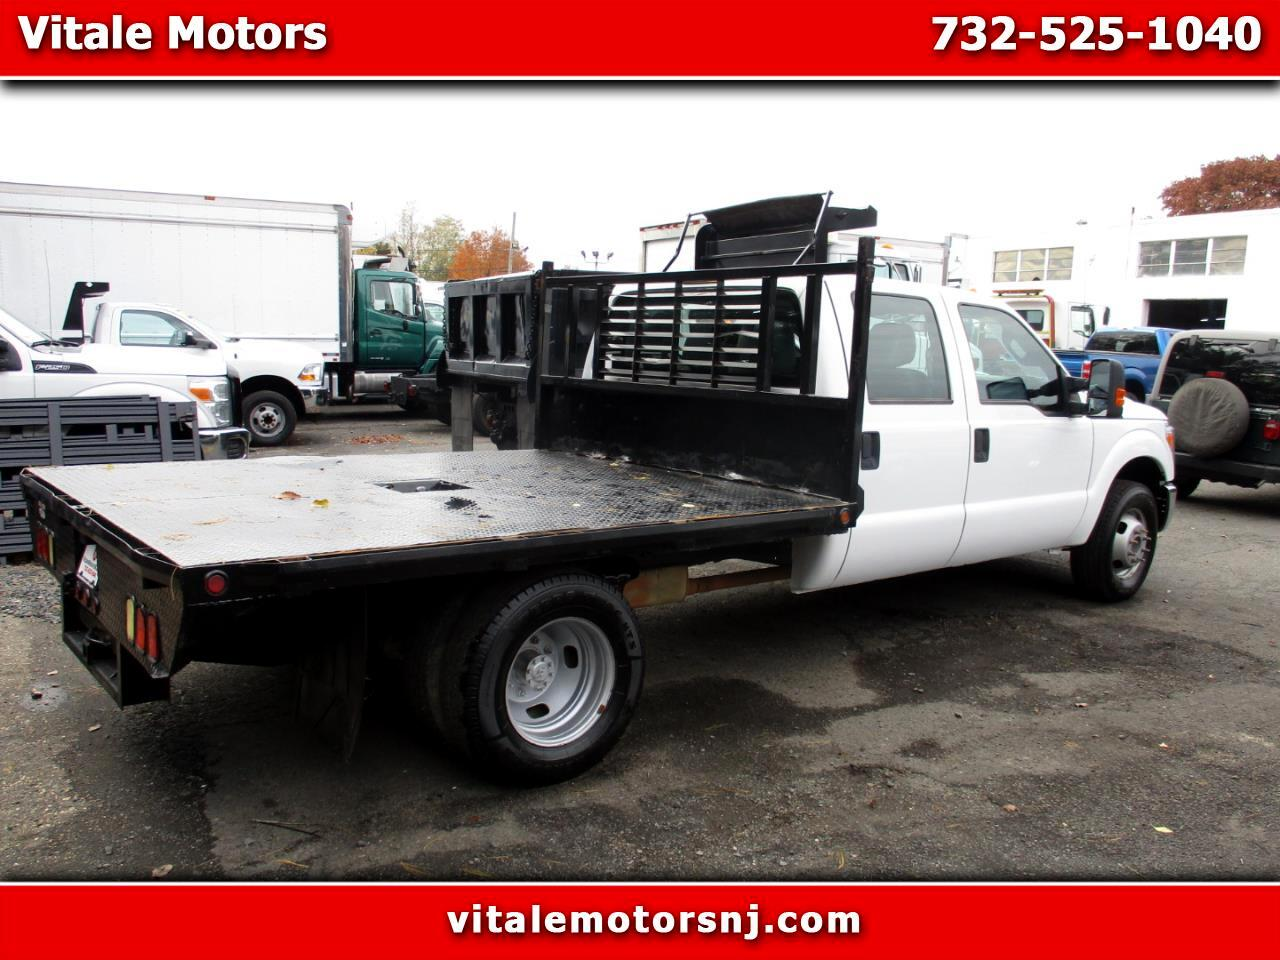 2014 Ford F-350 SD GOOSENECK 9 FOOT RACK FLAT DECK XL